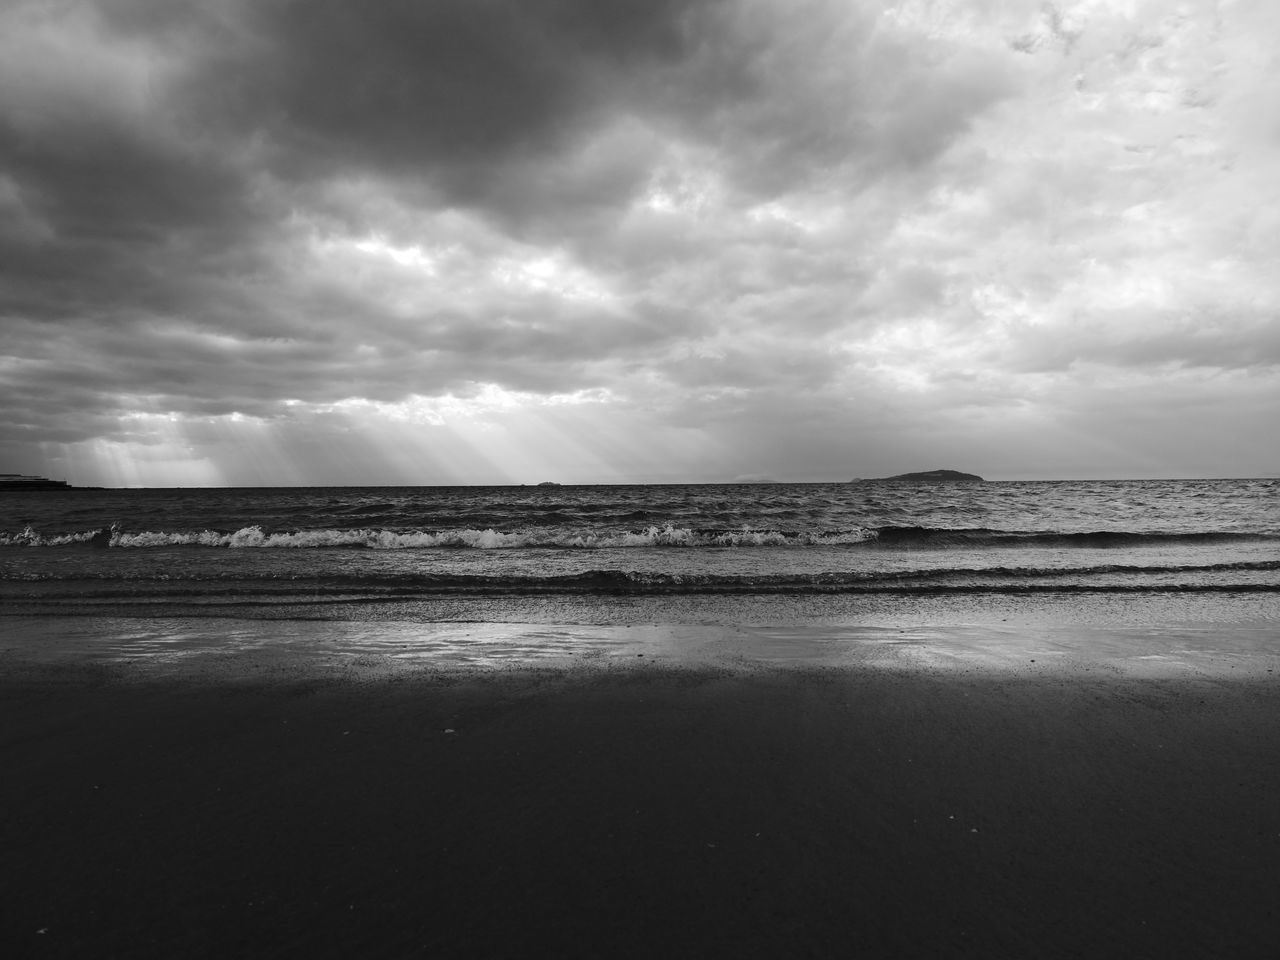 Kagawa Prefecture Japan Black And White Sea No People Water Landscape Tranquility Horizon Outdoors Coast Day Island Wave Nature Reflection Eye Stable Vision Voice Kiss Sunset Past Everything Becomes Equal By Extinction